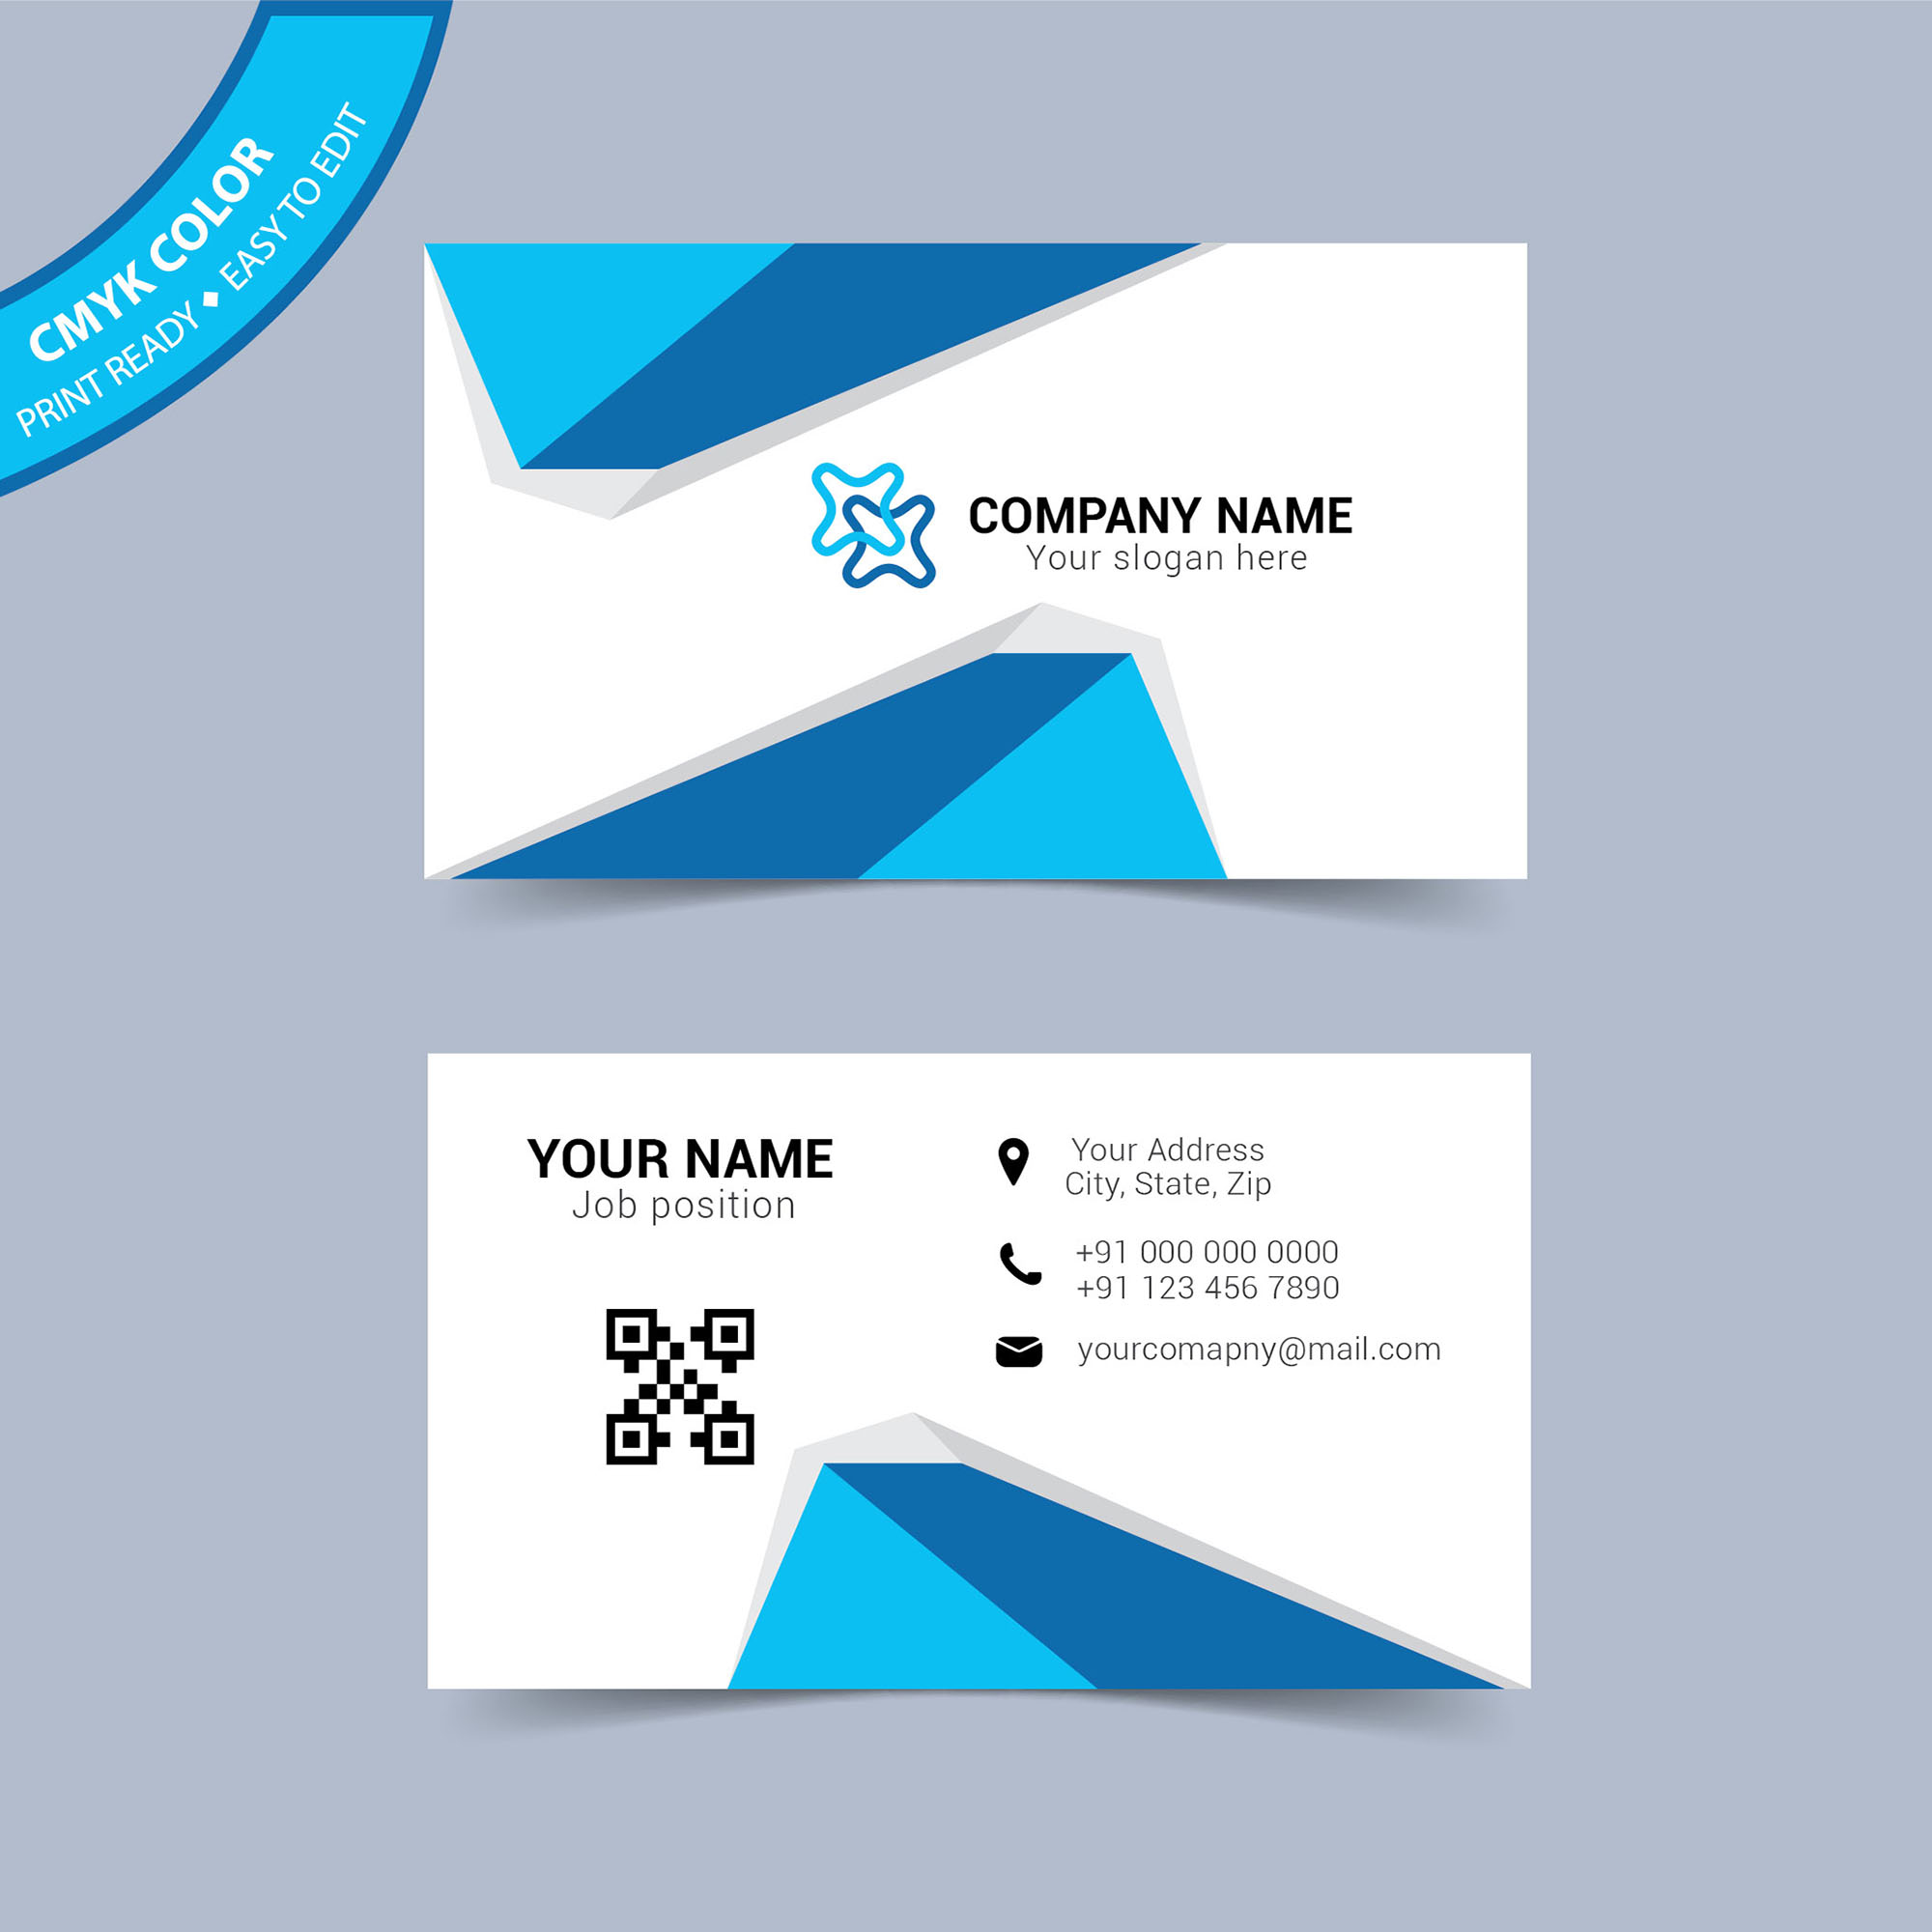 Business card layout template free download wisxi business card business cards business card design business card template design templates wajeb